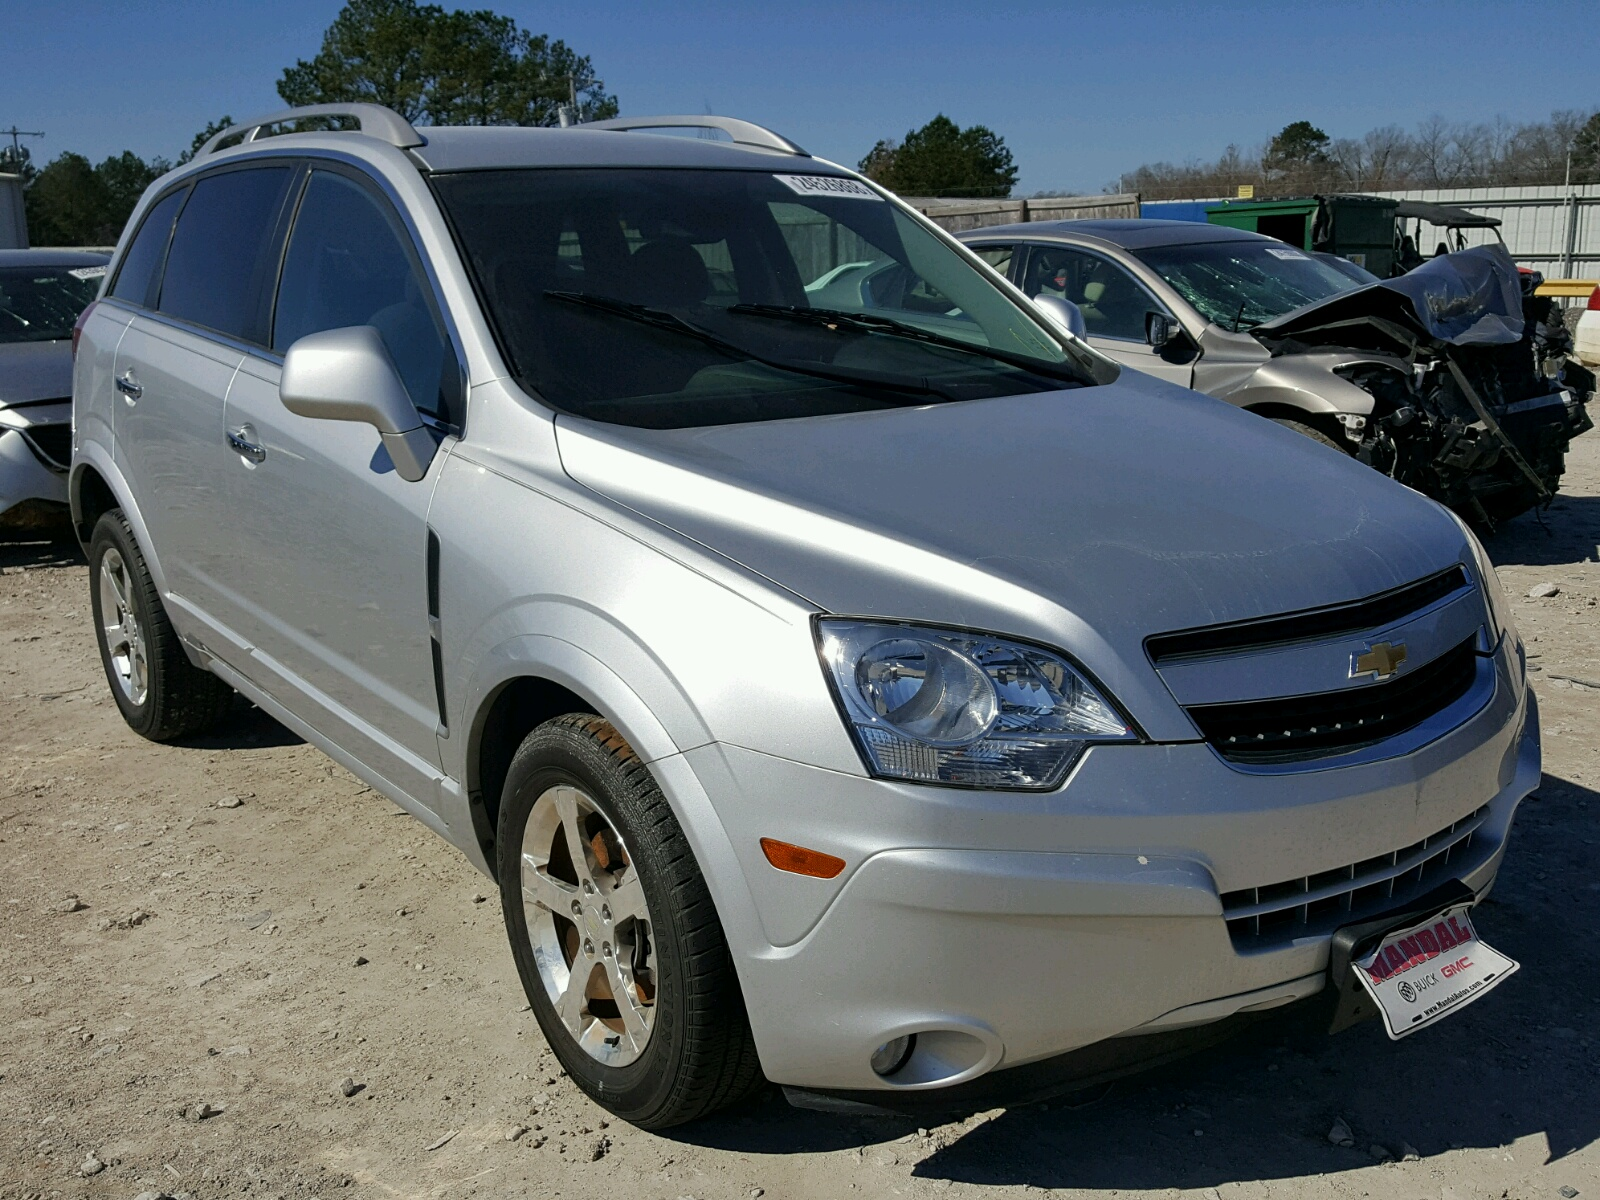 com view lt kwazulu central usedcars captiva in sale chevrolet natal car durban south africa for usedcarsouthafrica used